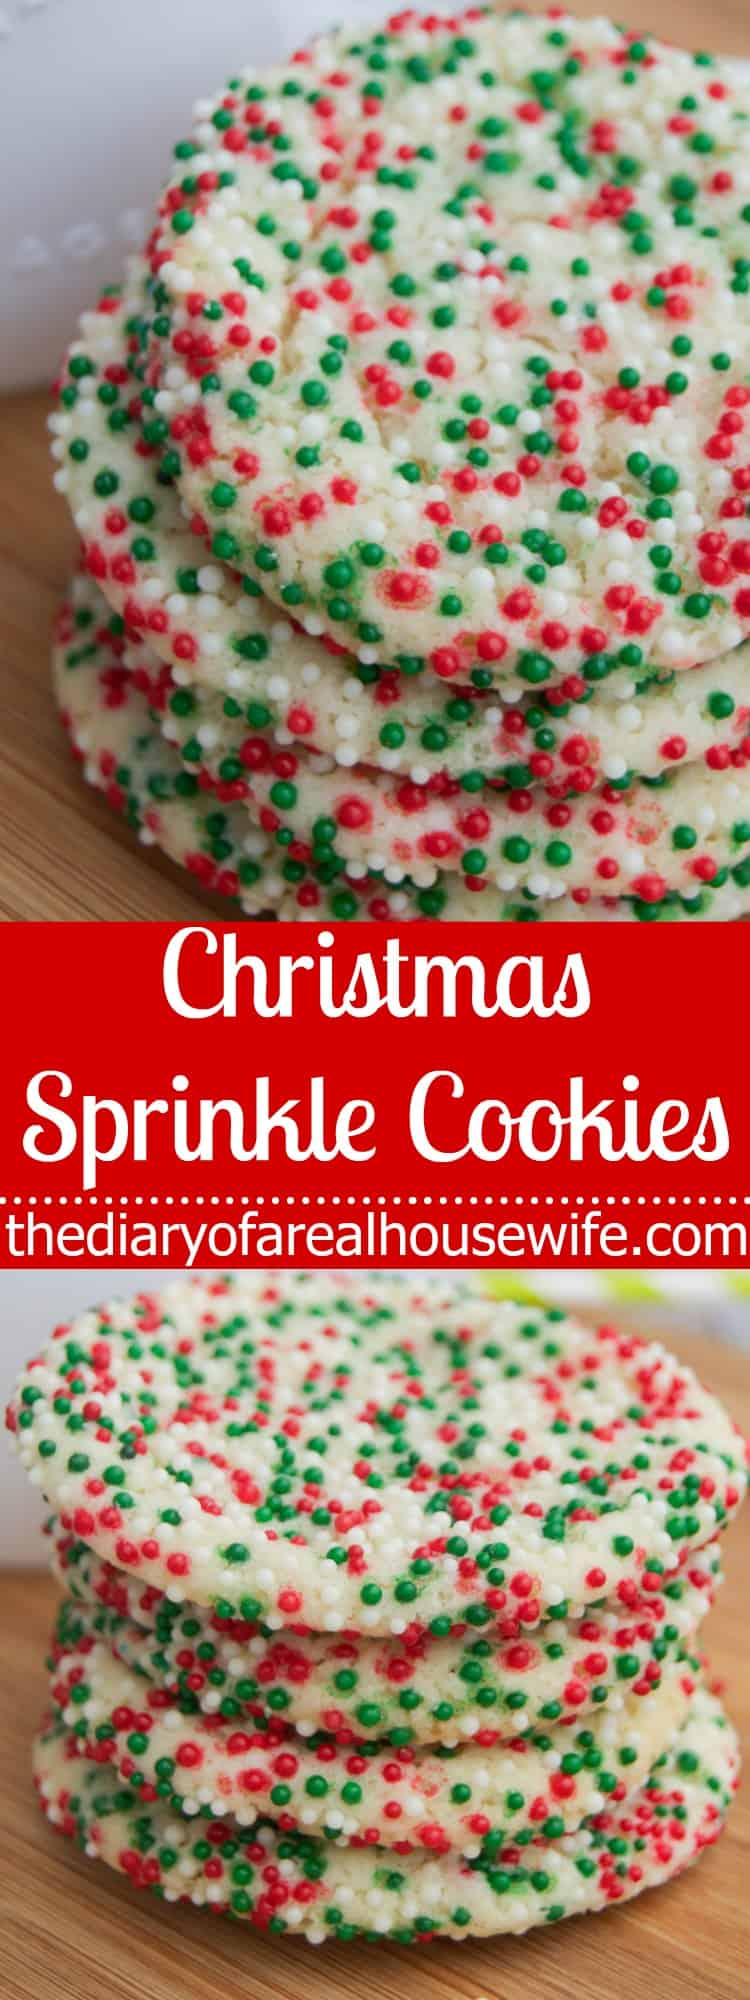 christmas sprinkle cookies the diary of a real housewife - Christmas Sprinkles